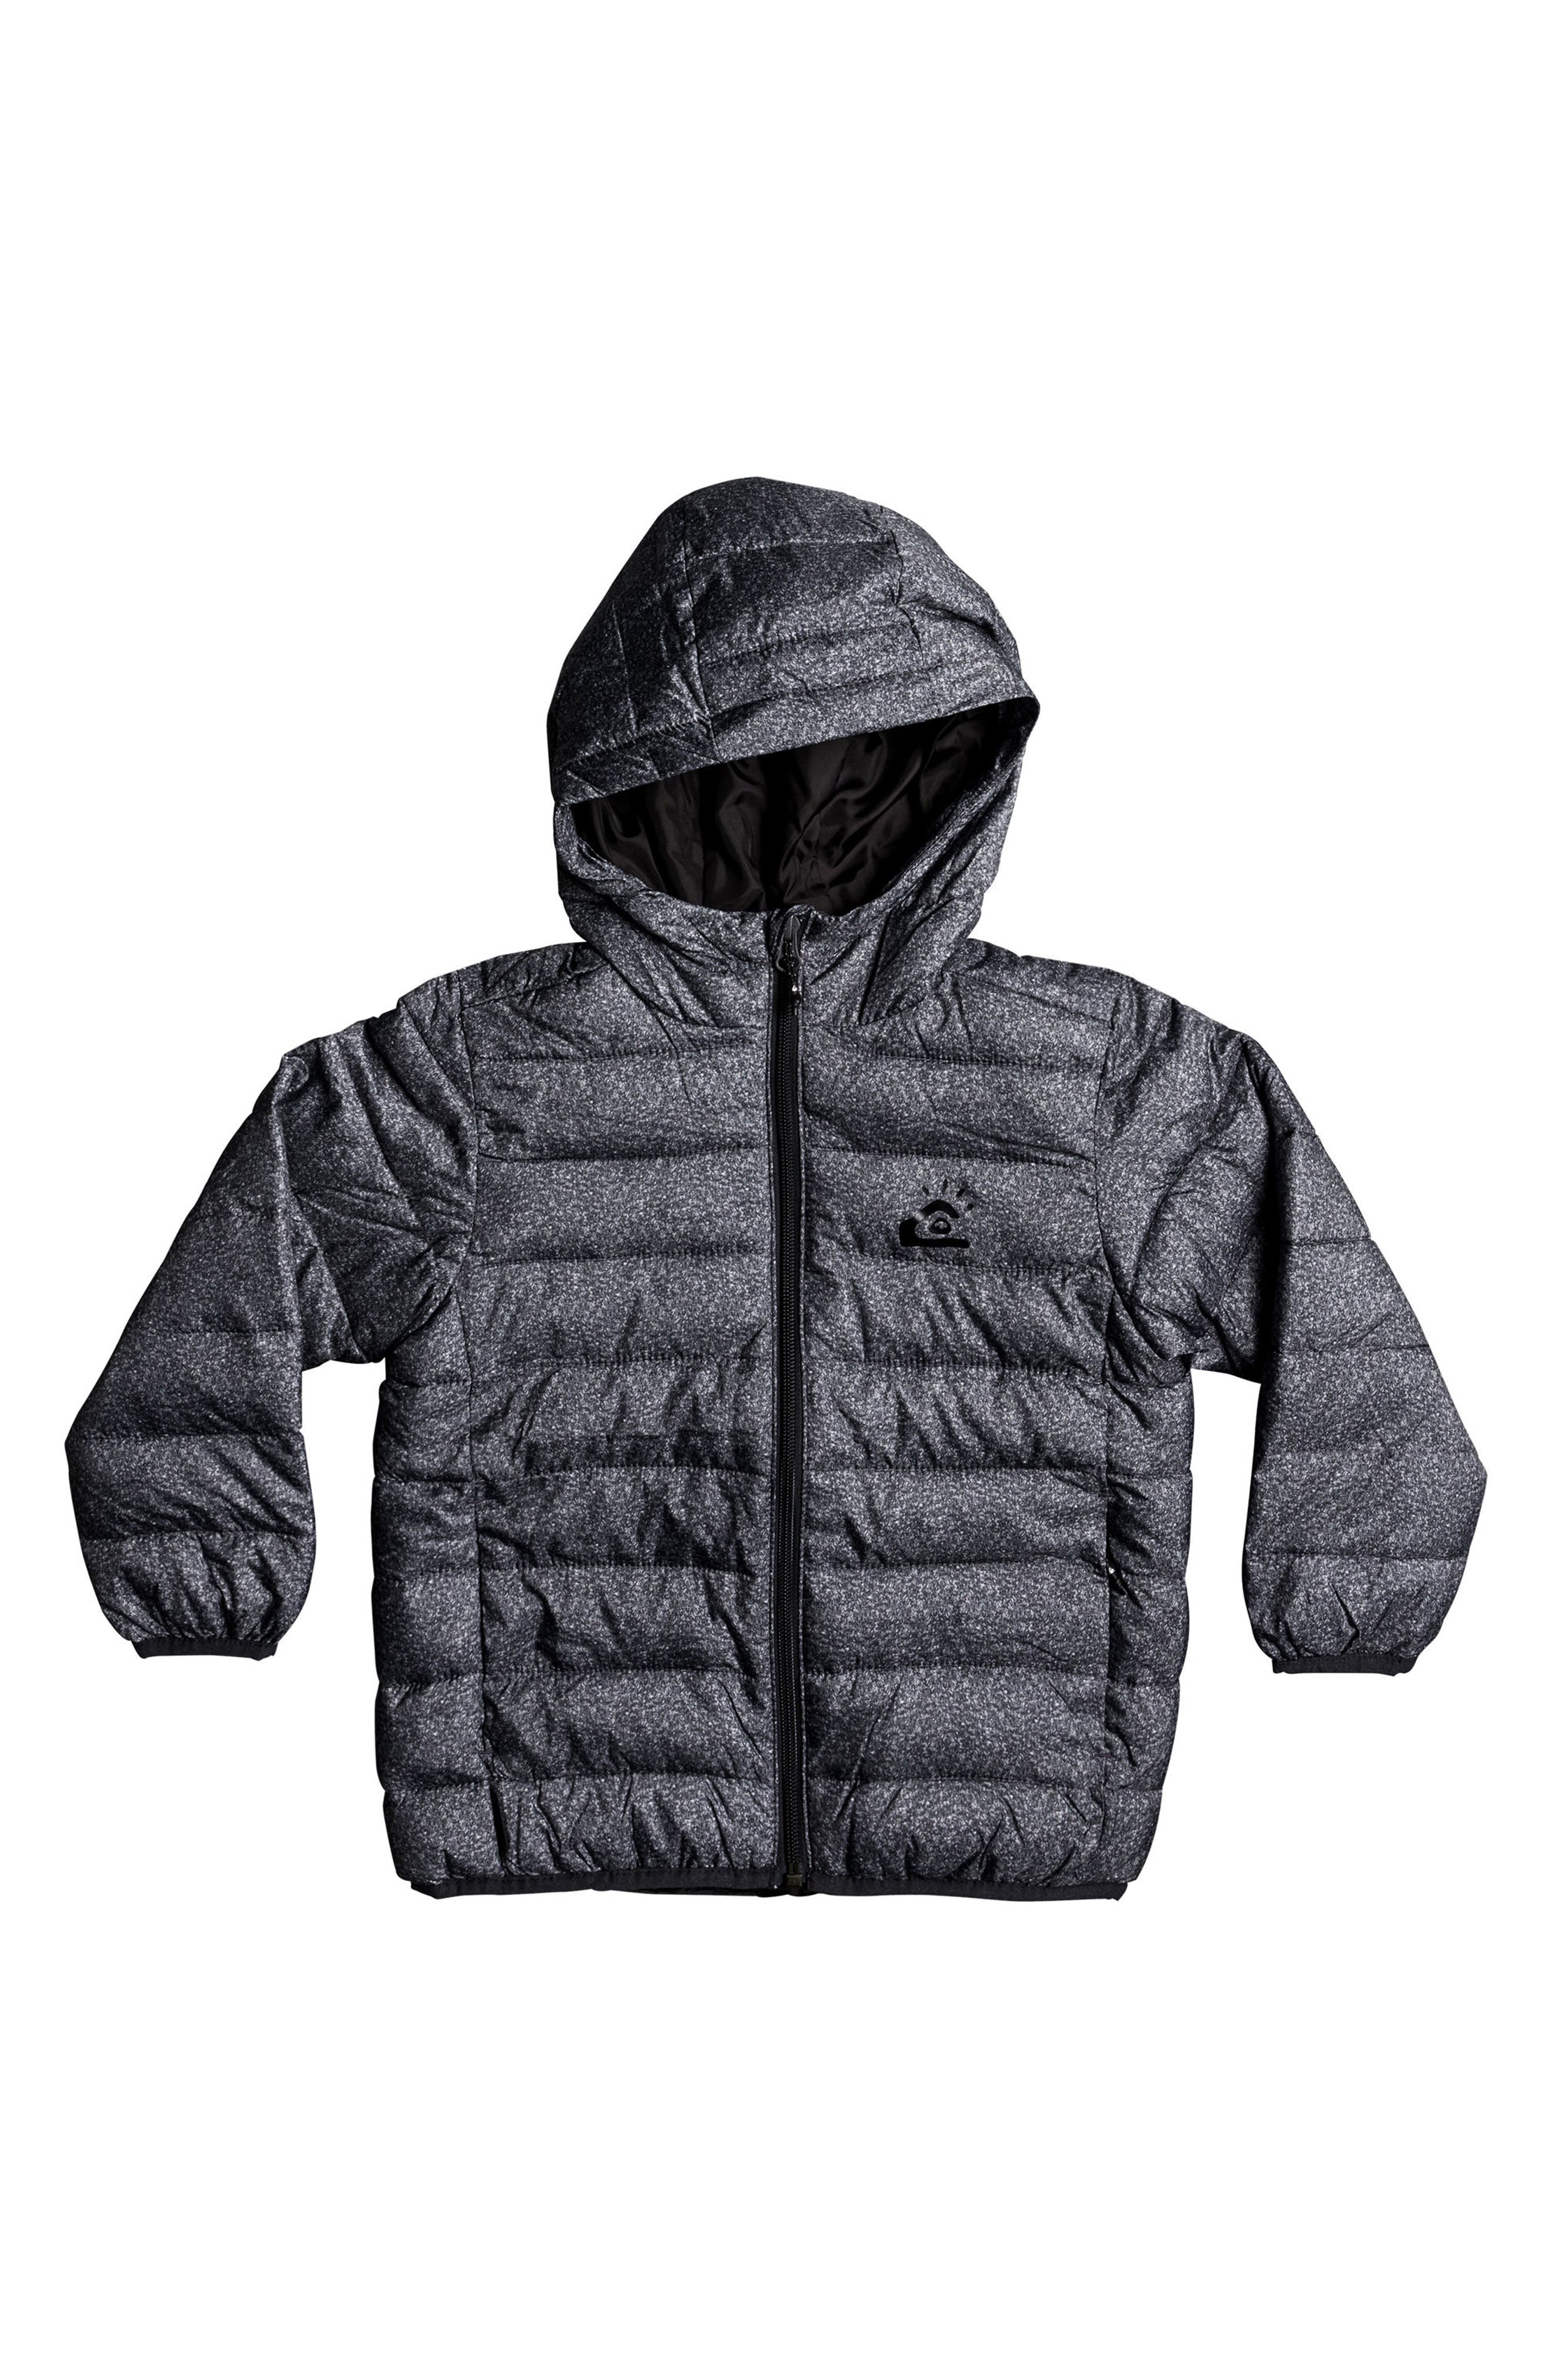 Main Image - Quicksilver Scaly Water-Resistant Hooded Puffer Jacket (Toddler Boys & Little Boys)